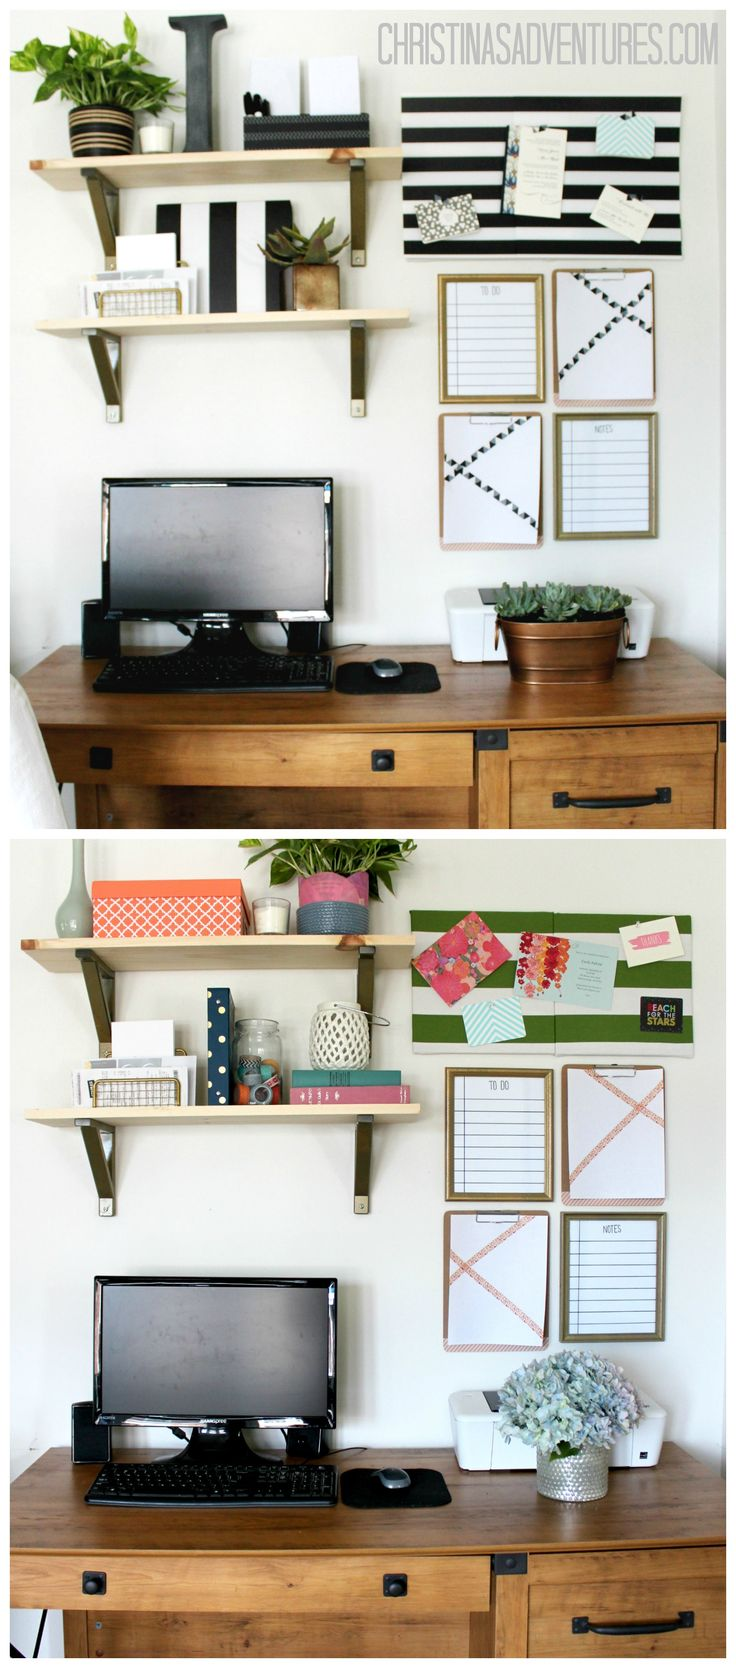 1000 ideas about small home offices on pinterest small office spaces small office design and. Black Bedroom Furniture Sets. Home Design Ideas